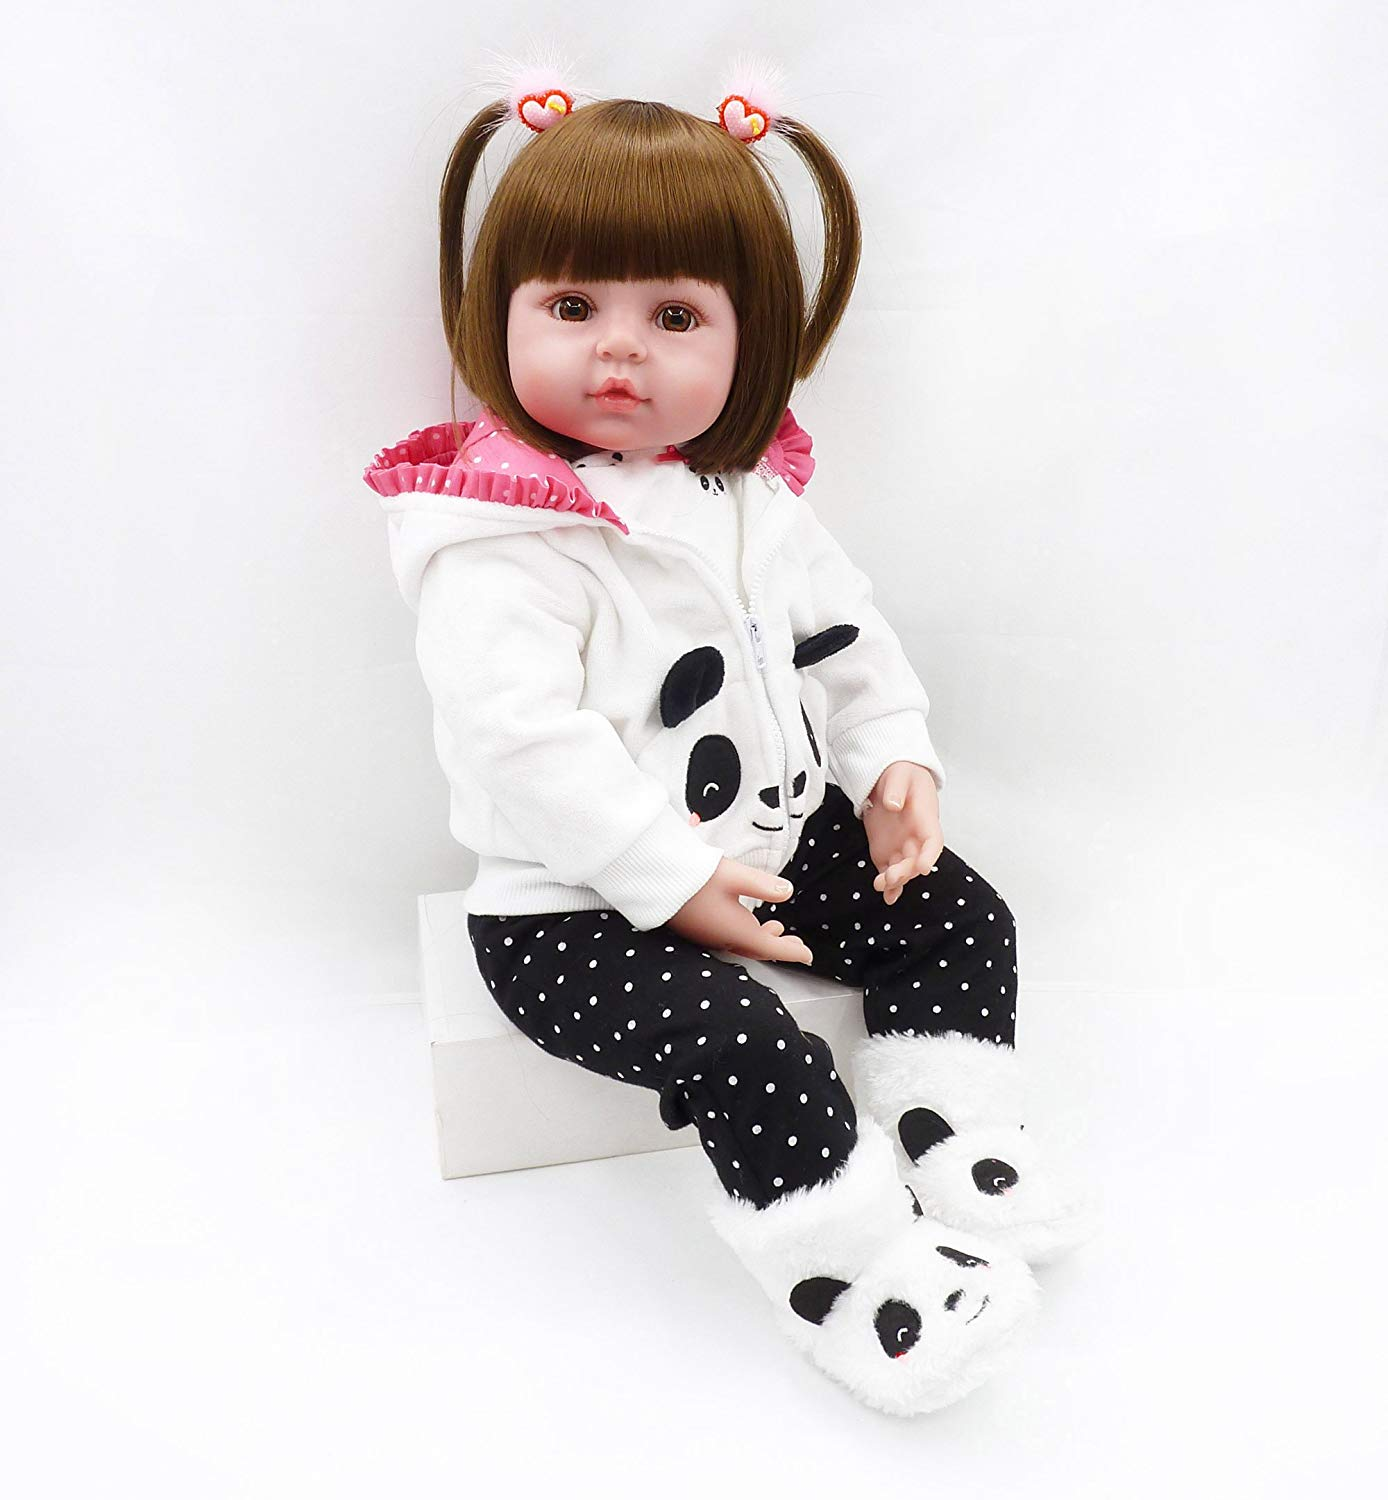 Medylove Reborn Baby Doll Clothes Panda Outfit Set for 17-18 inch Reborn Doll Girl Matching Clothes Accessories 4pcs